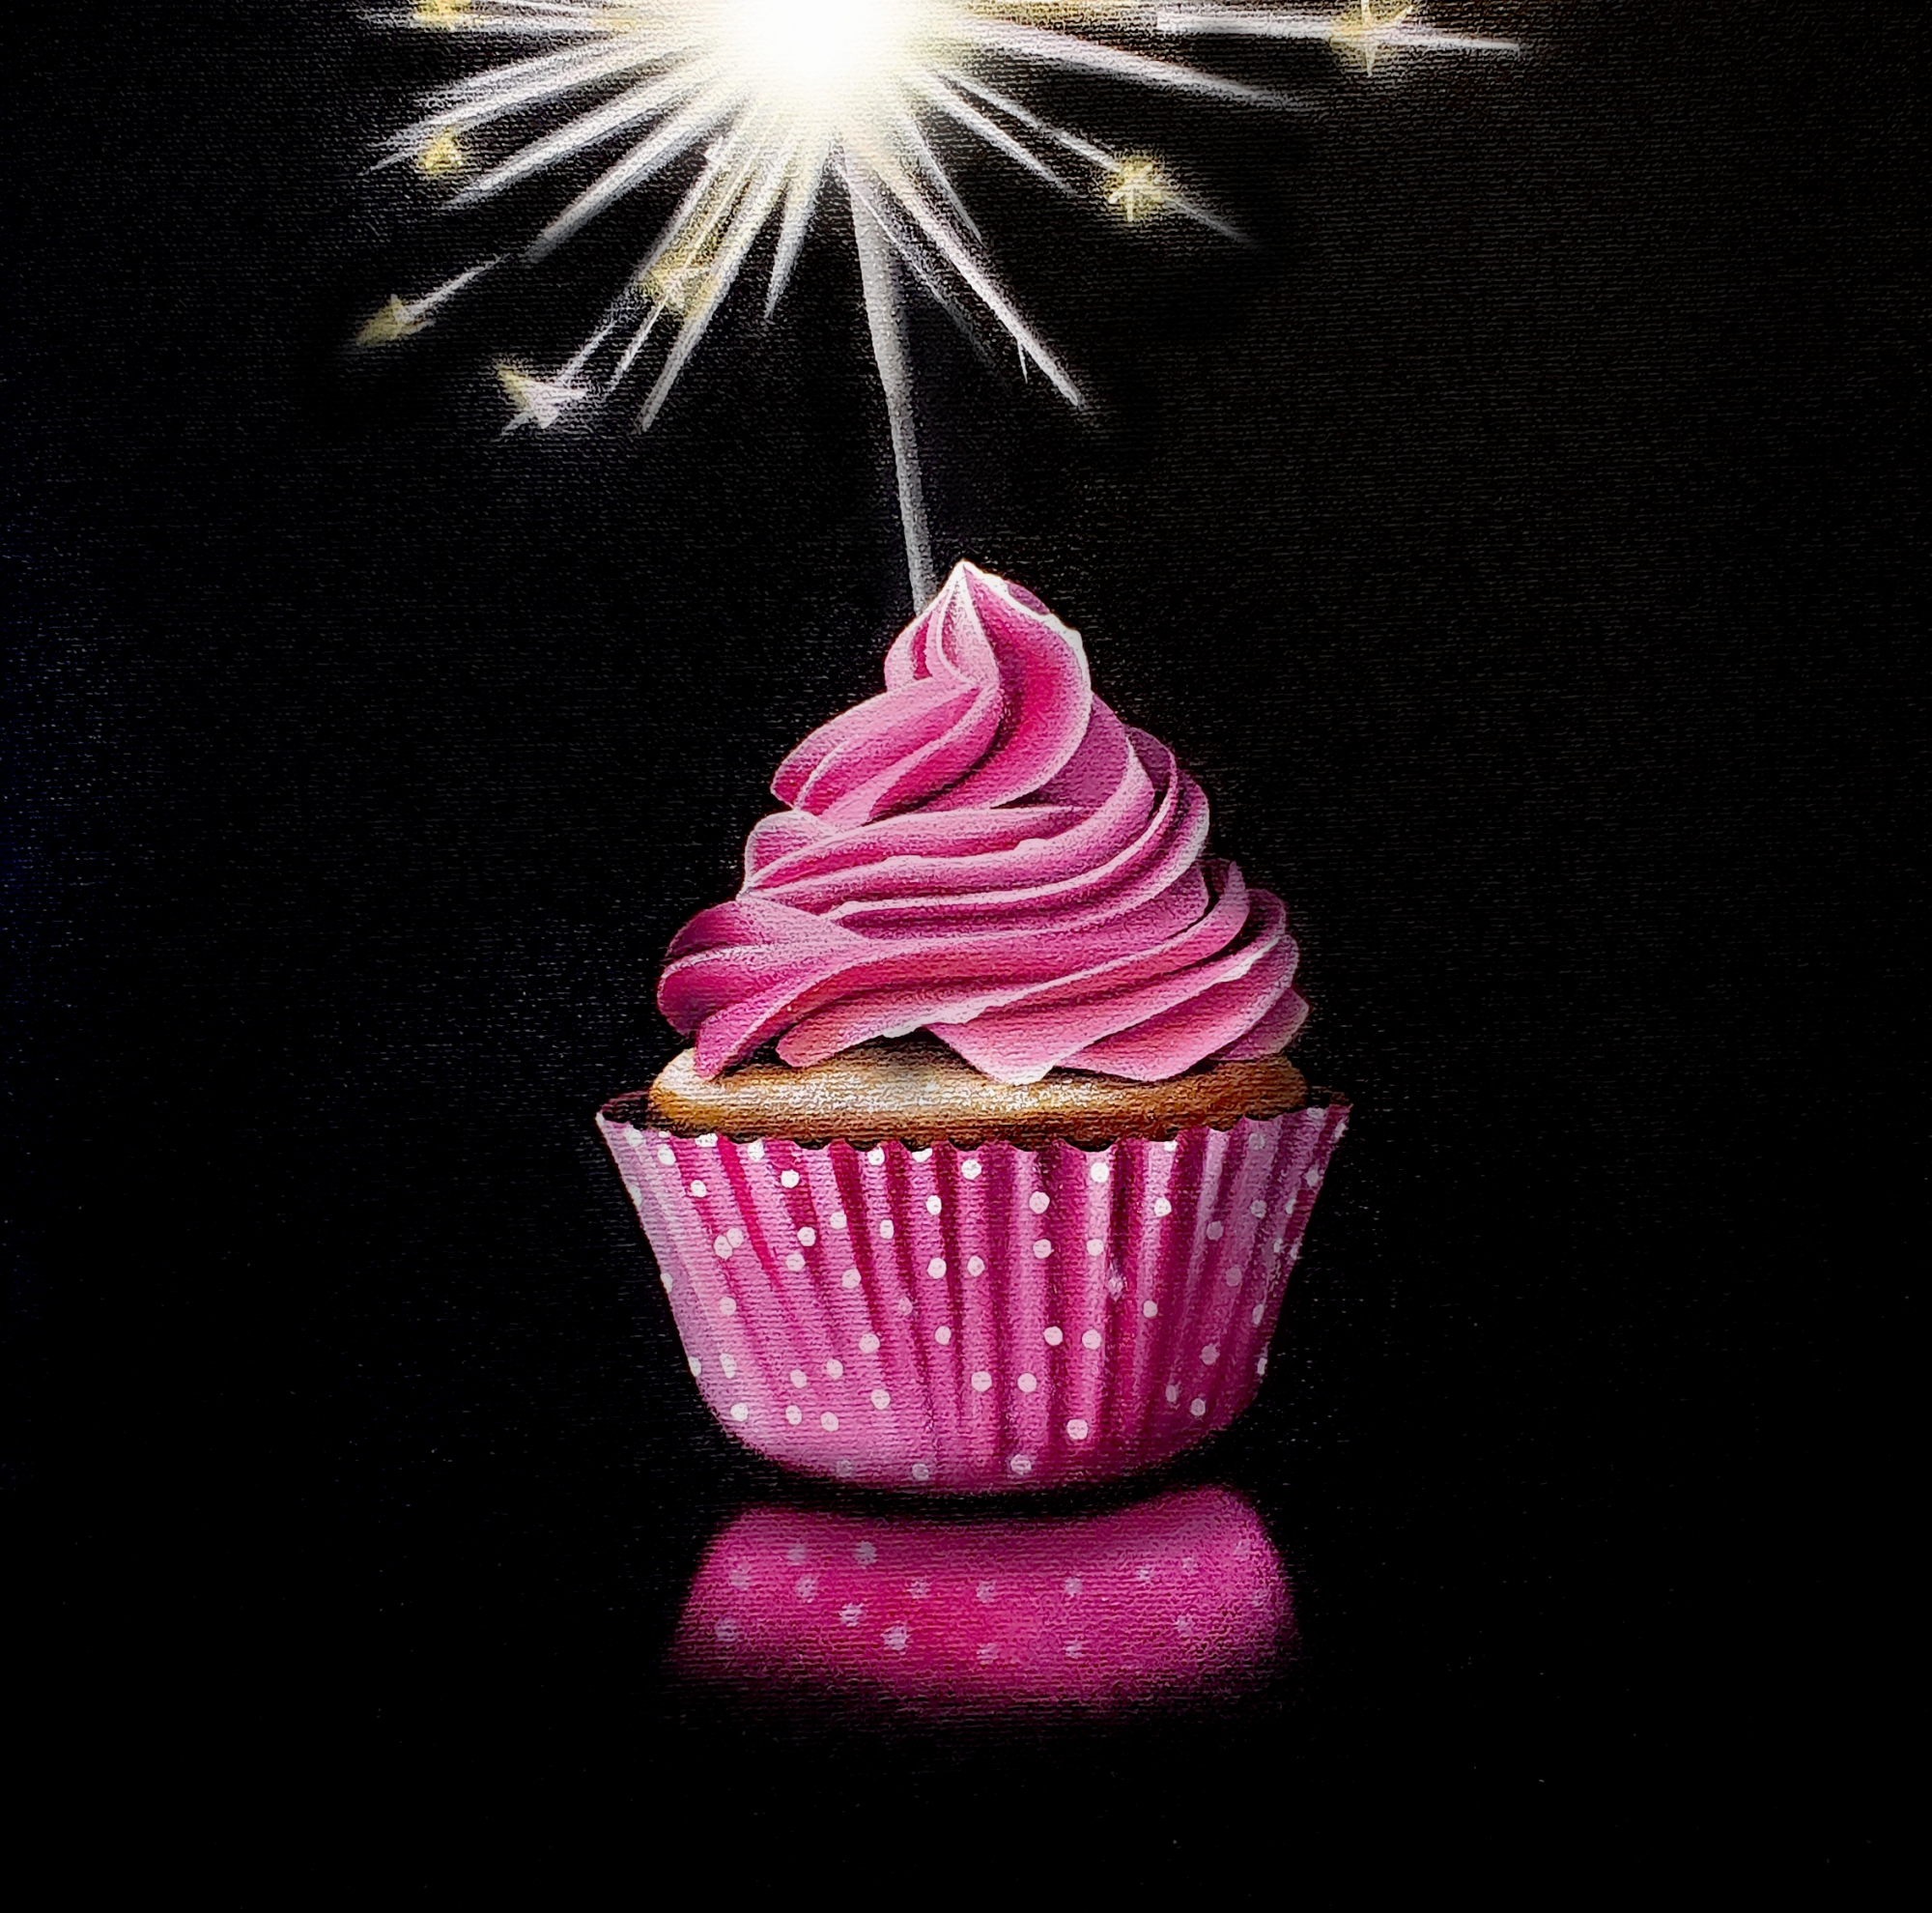 Tasting Room: Pink Cupcake with Sparkler  by Erin Rothstein